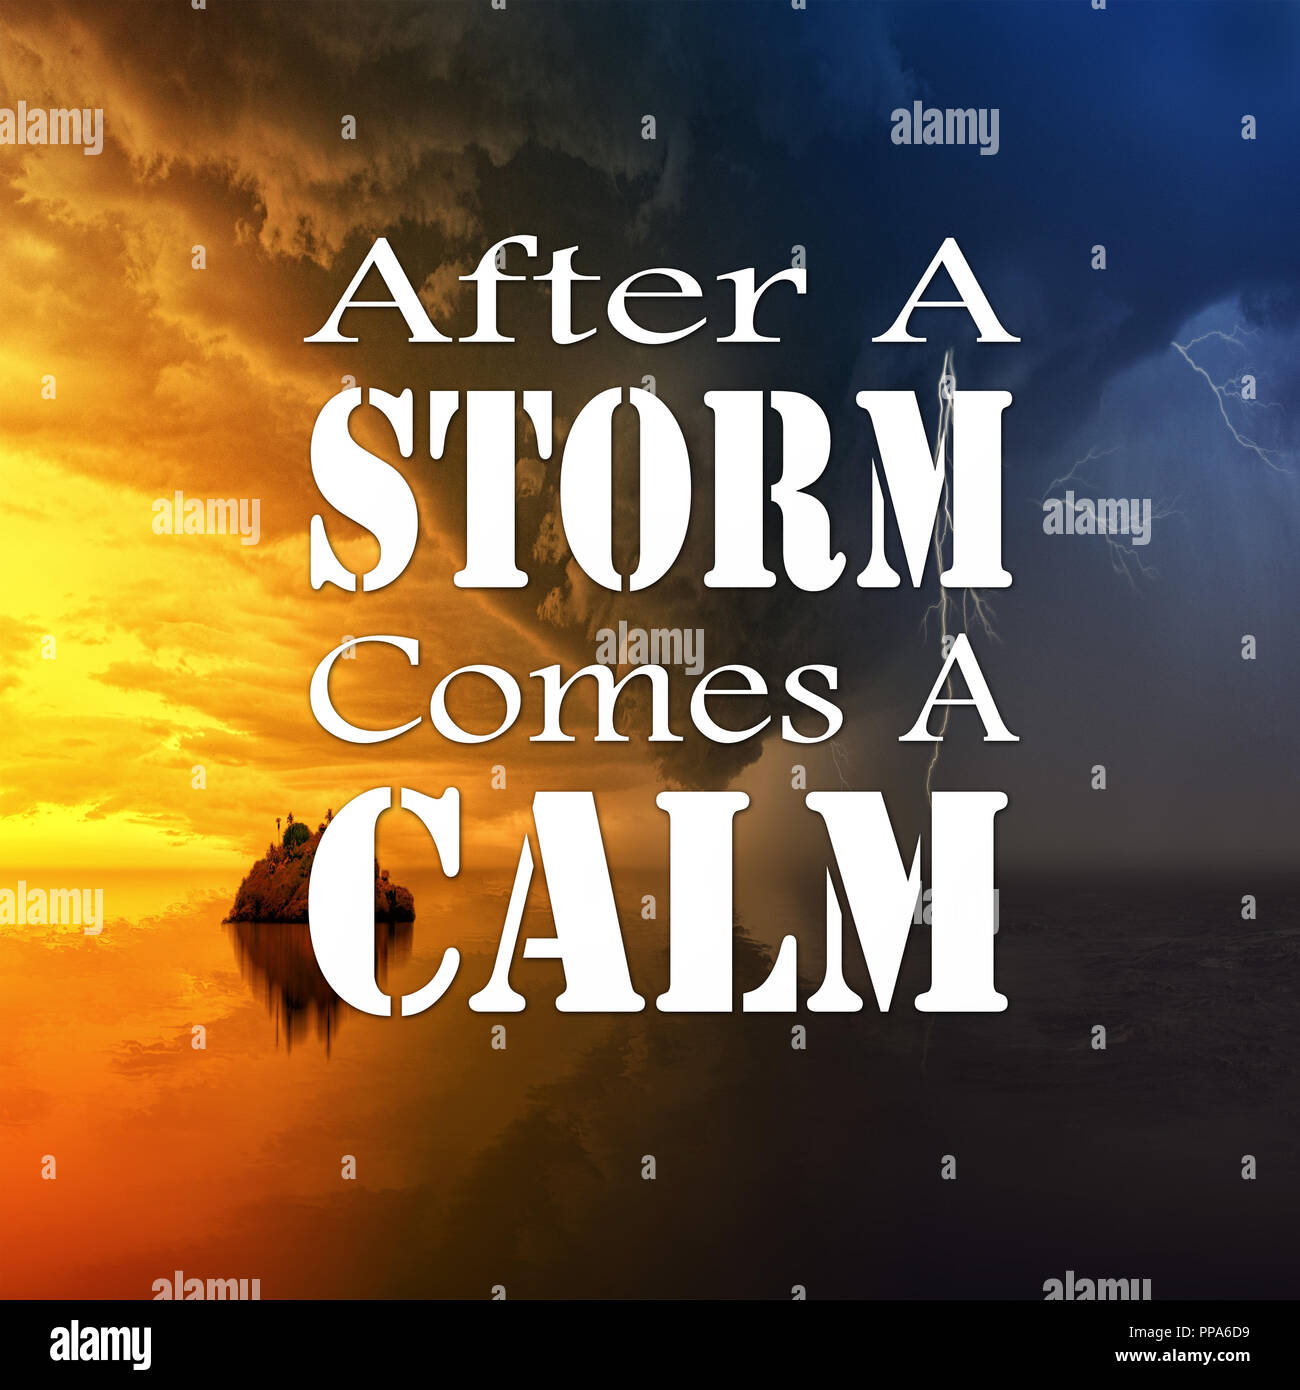 Inspirational Quotes After a storm comes a calm, positive ...